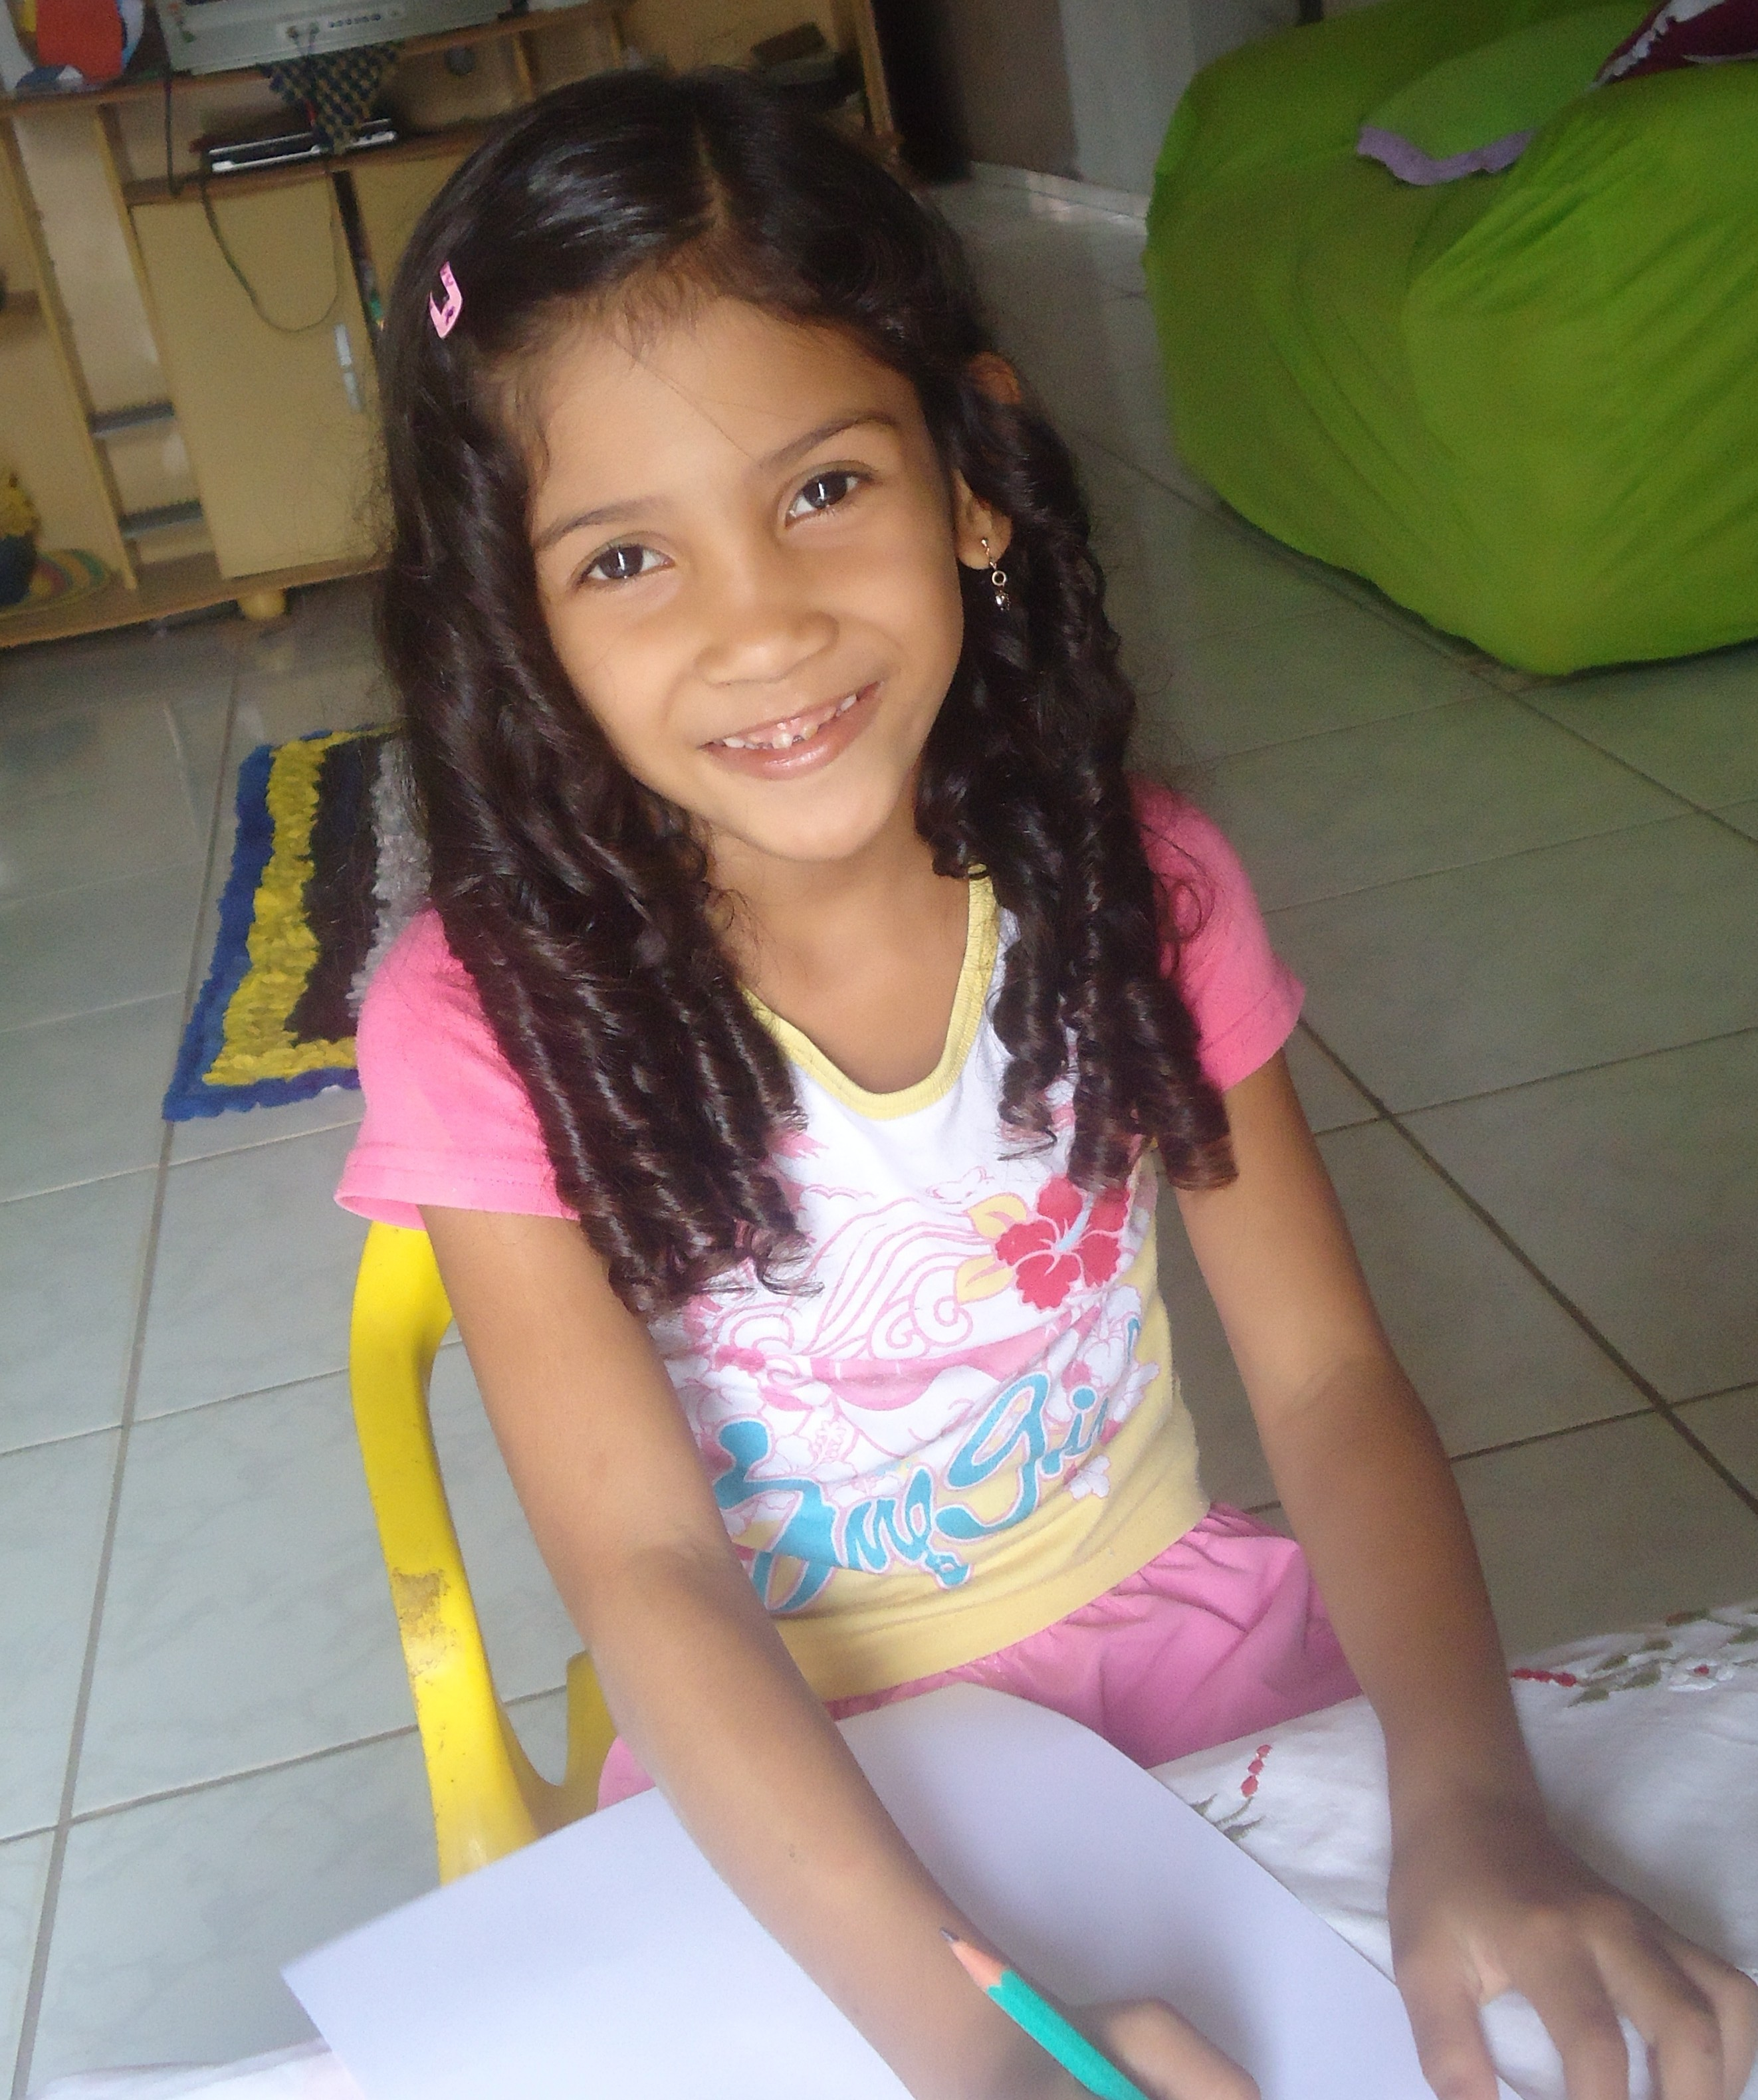 A girl from our Real Choices, Real Lives study, Brazil